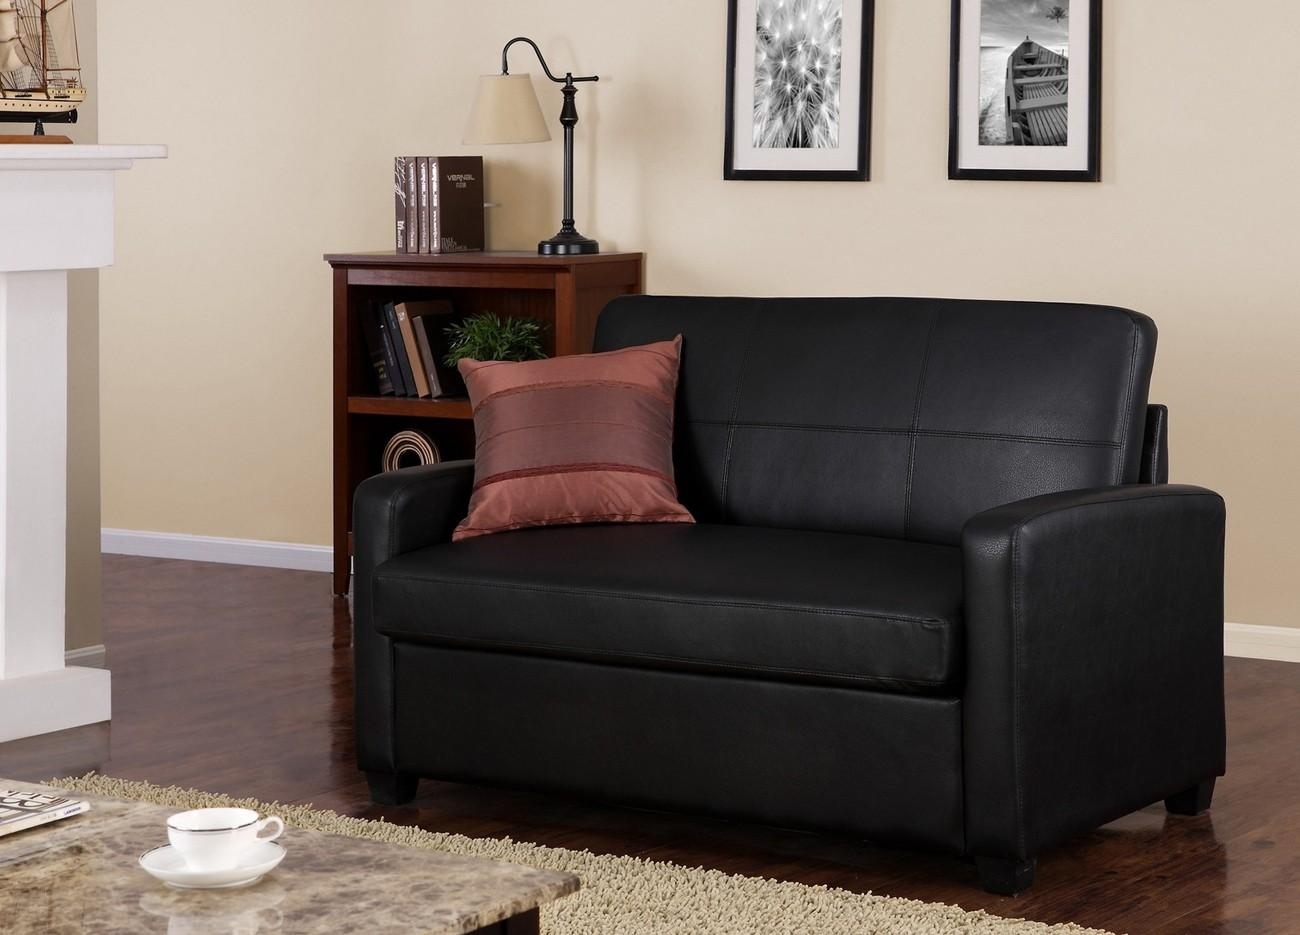 Mainstays | Black Faux Leather Sleeper Sofa For Mainstay Sofas (View 2 of 20)